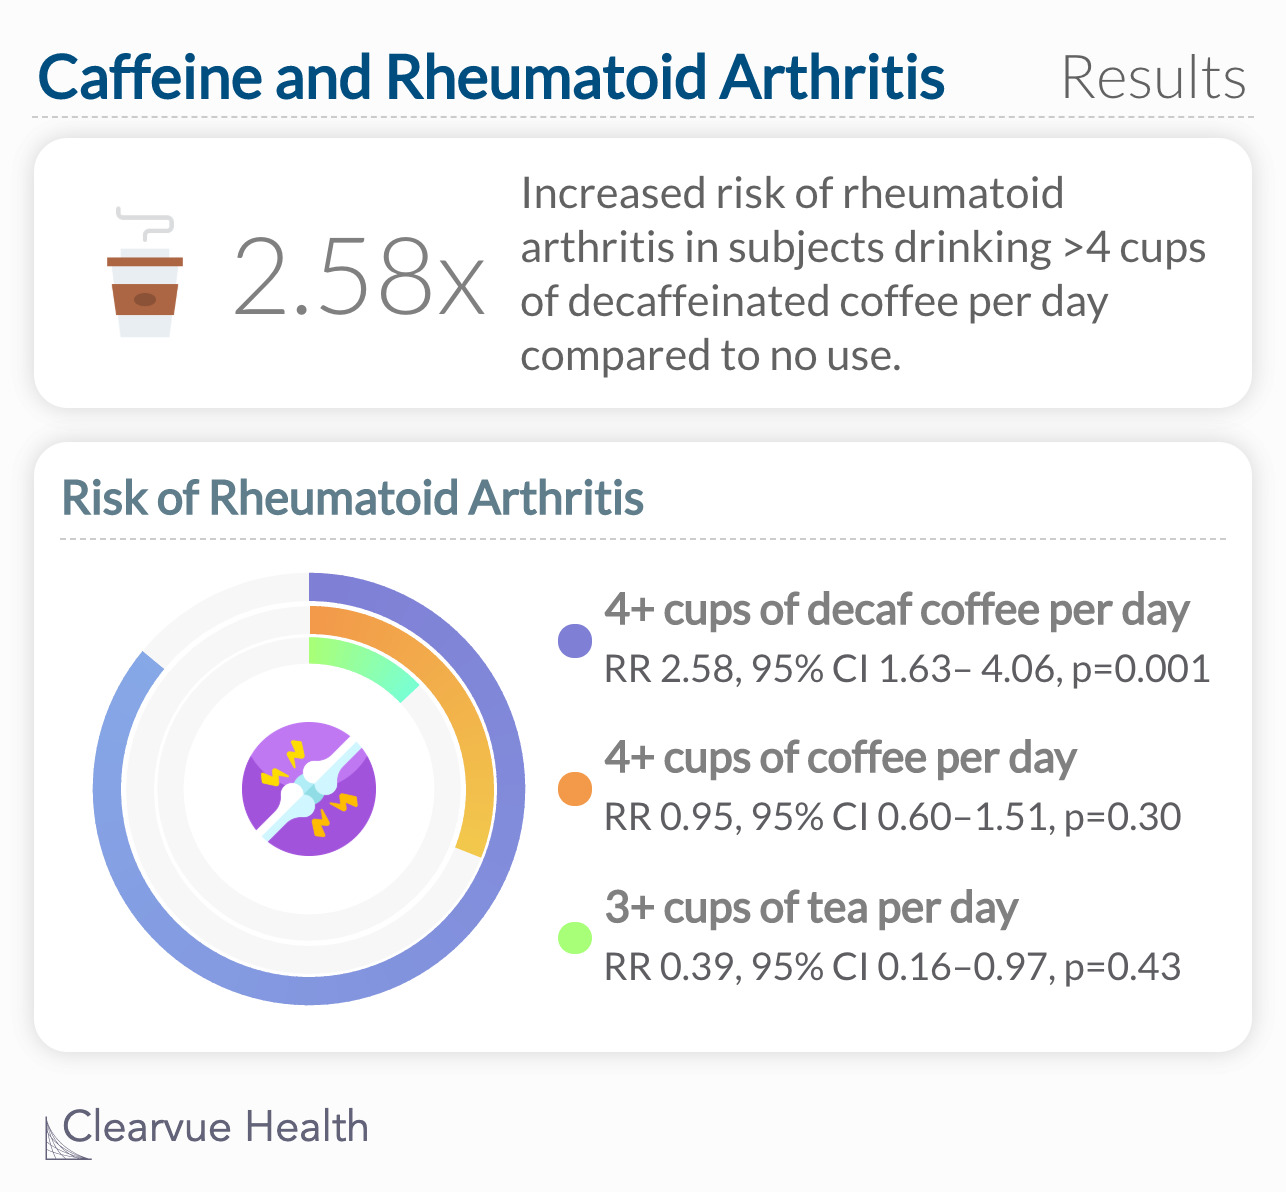 2.58x Increased risk of rheumatoid arthritis in subjects drinking >4 cups of decaffeinated coffee per day compared to no  use.